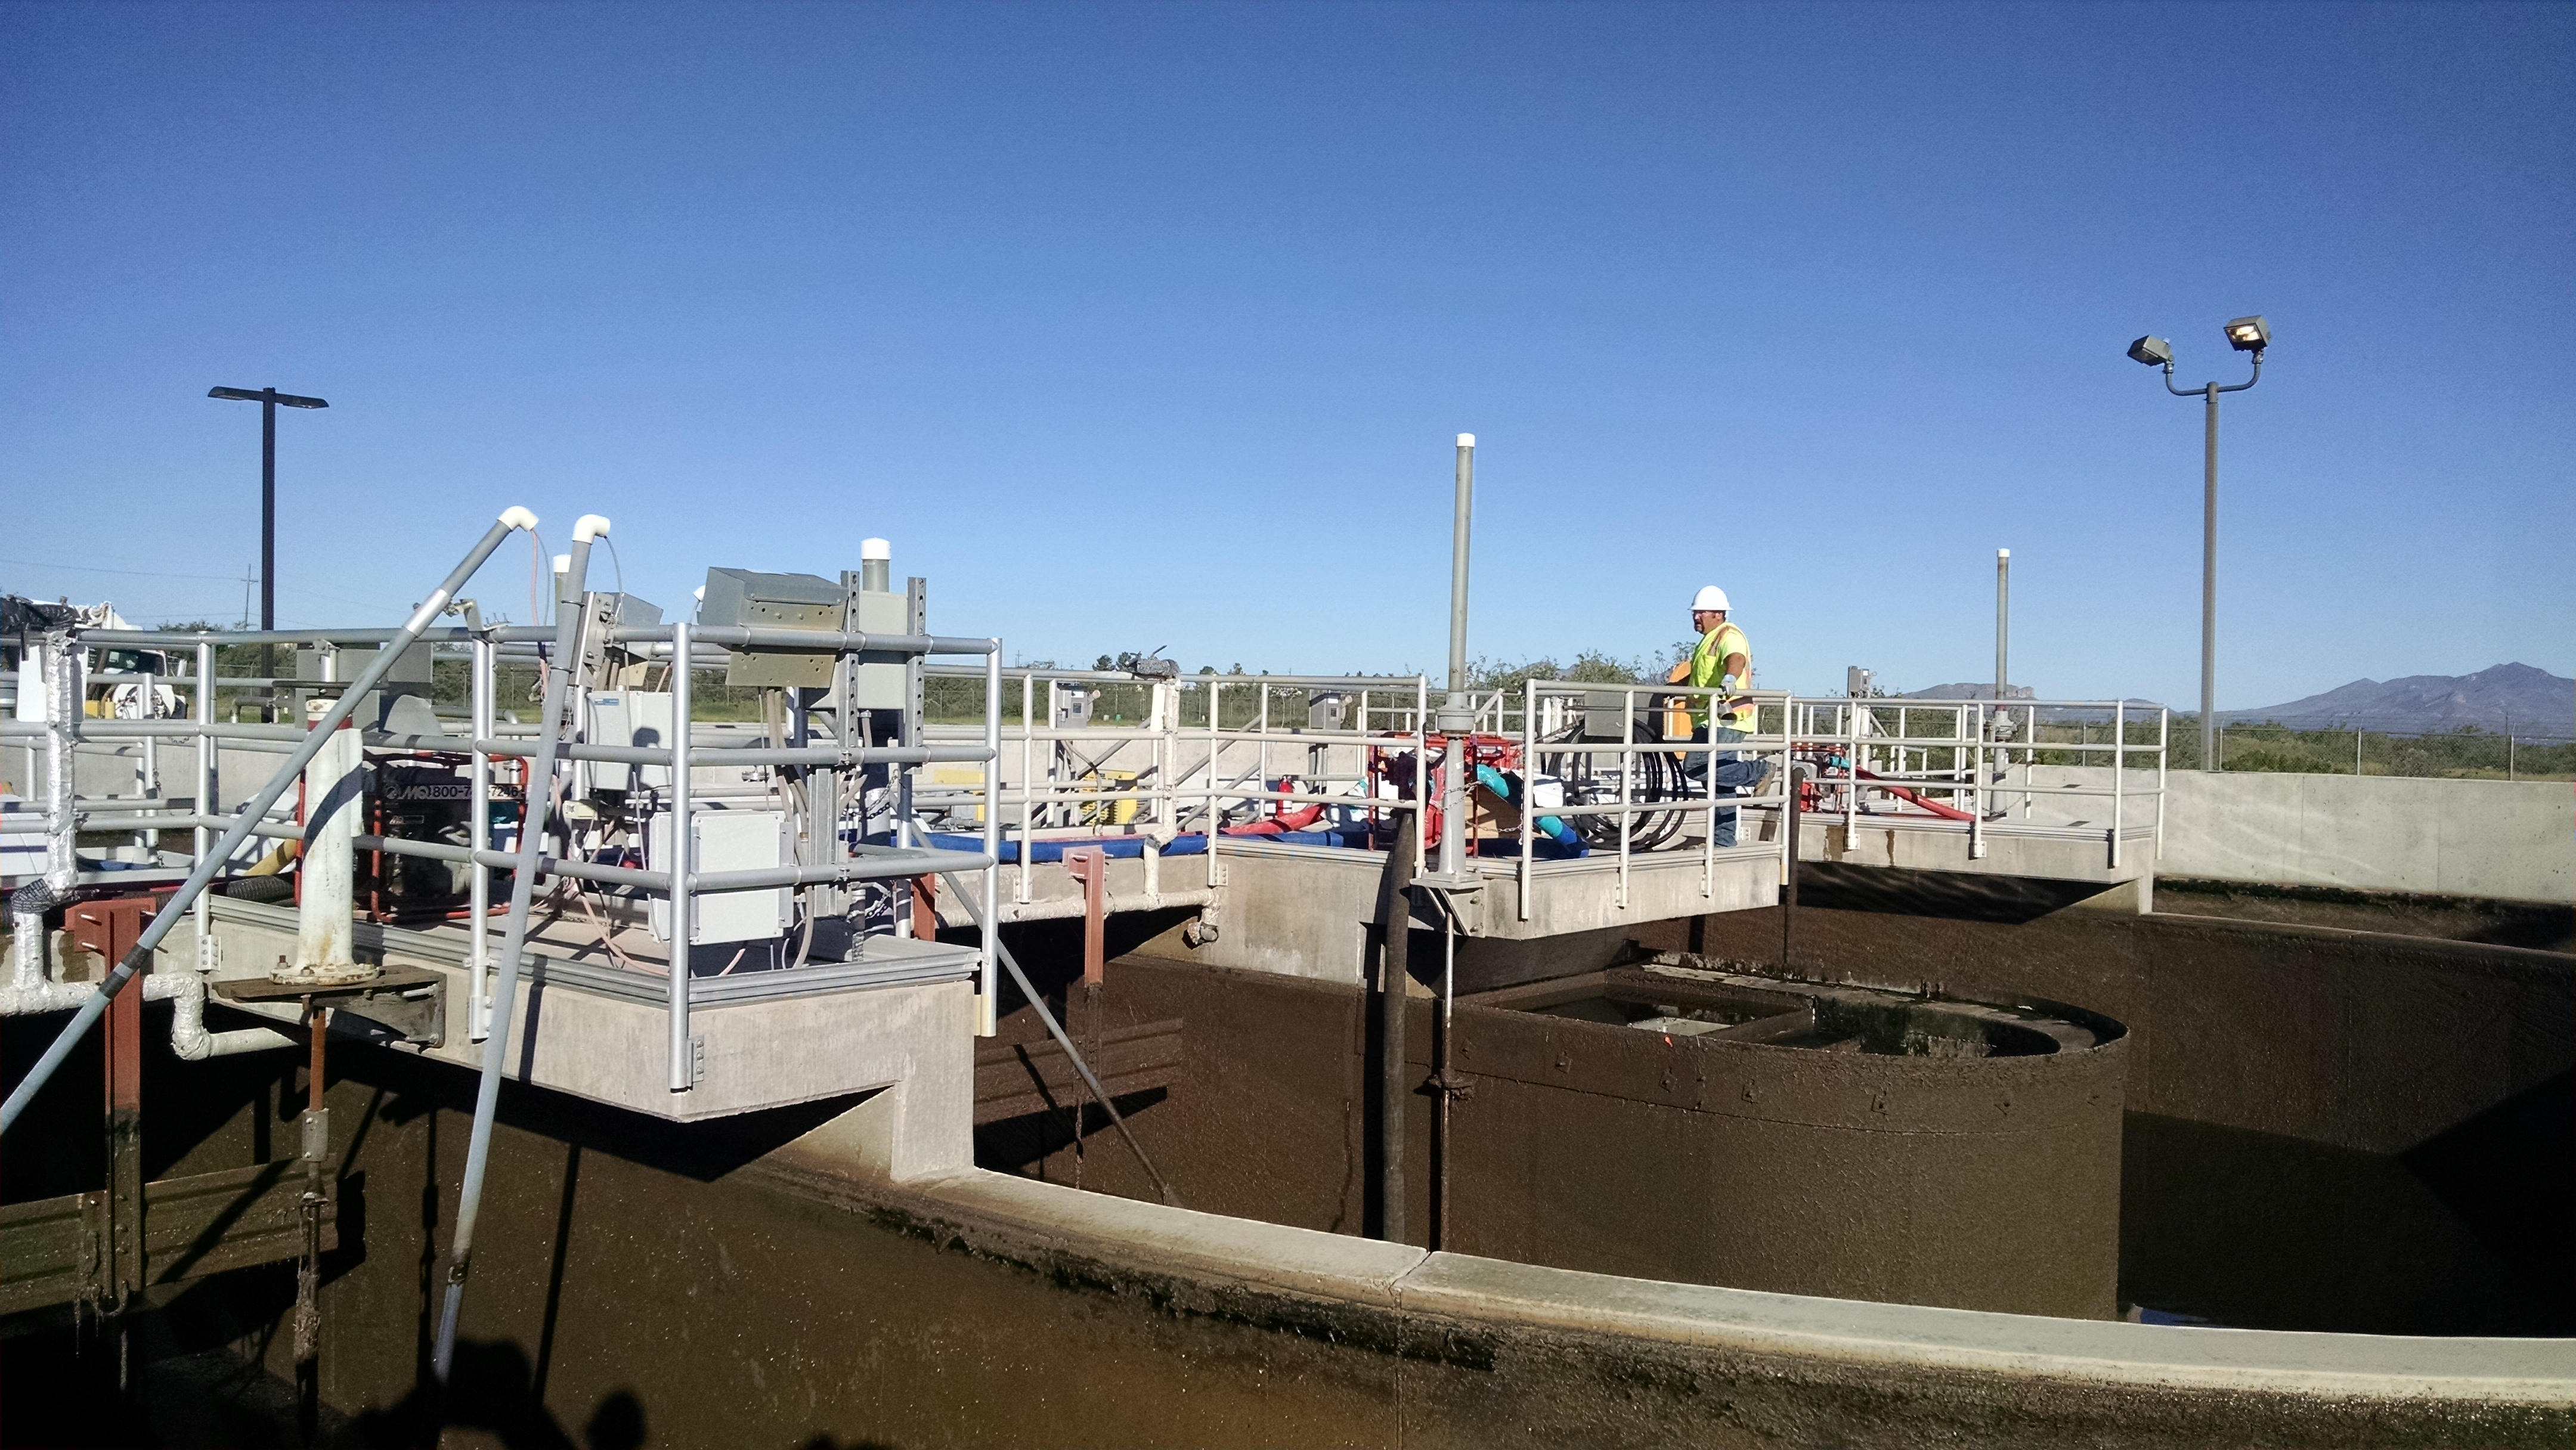 Waste Water Treatment Plant Oxidation Ditch Ft Huachuca - Munsey Contract & Development